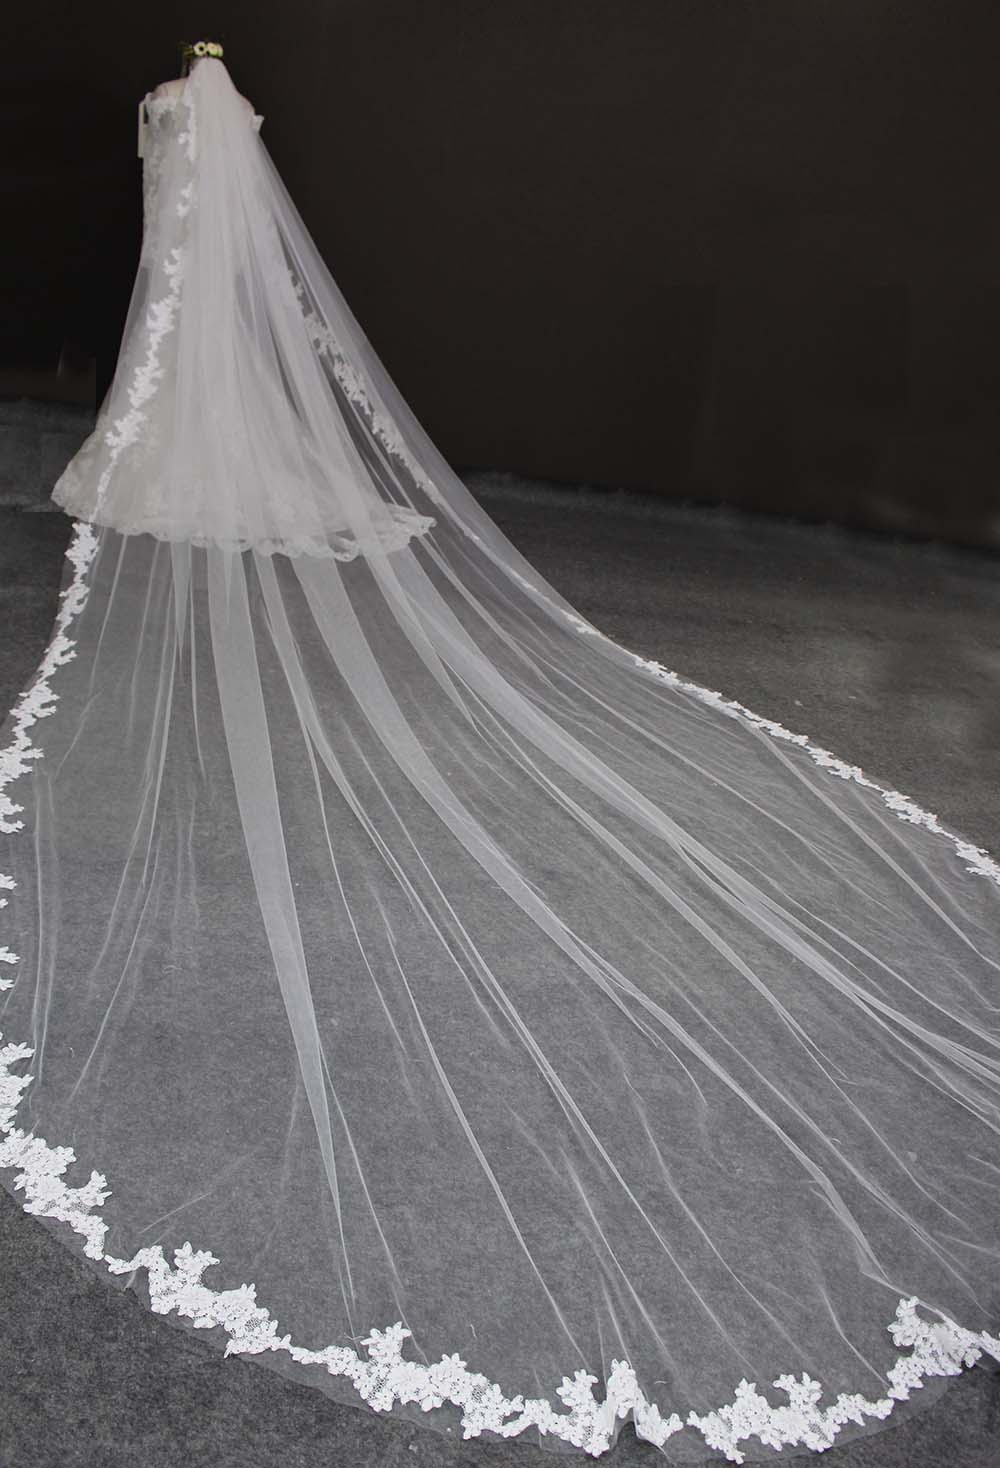 Long 5 Meters Lace Edge Wedding Veil with Comb One Layer 5M White Ivory Bridal Veil Voile Mariage Welon